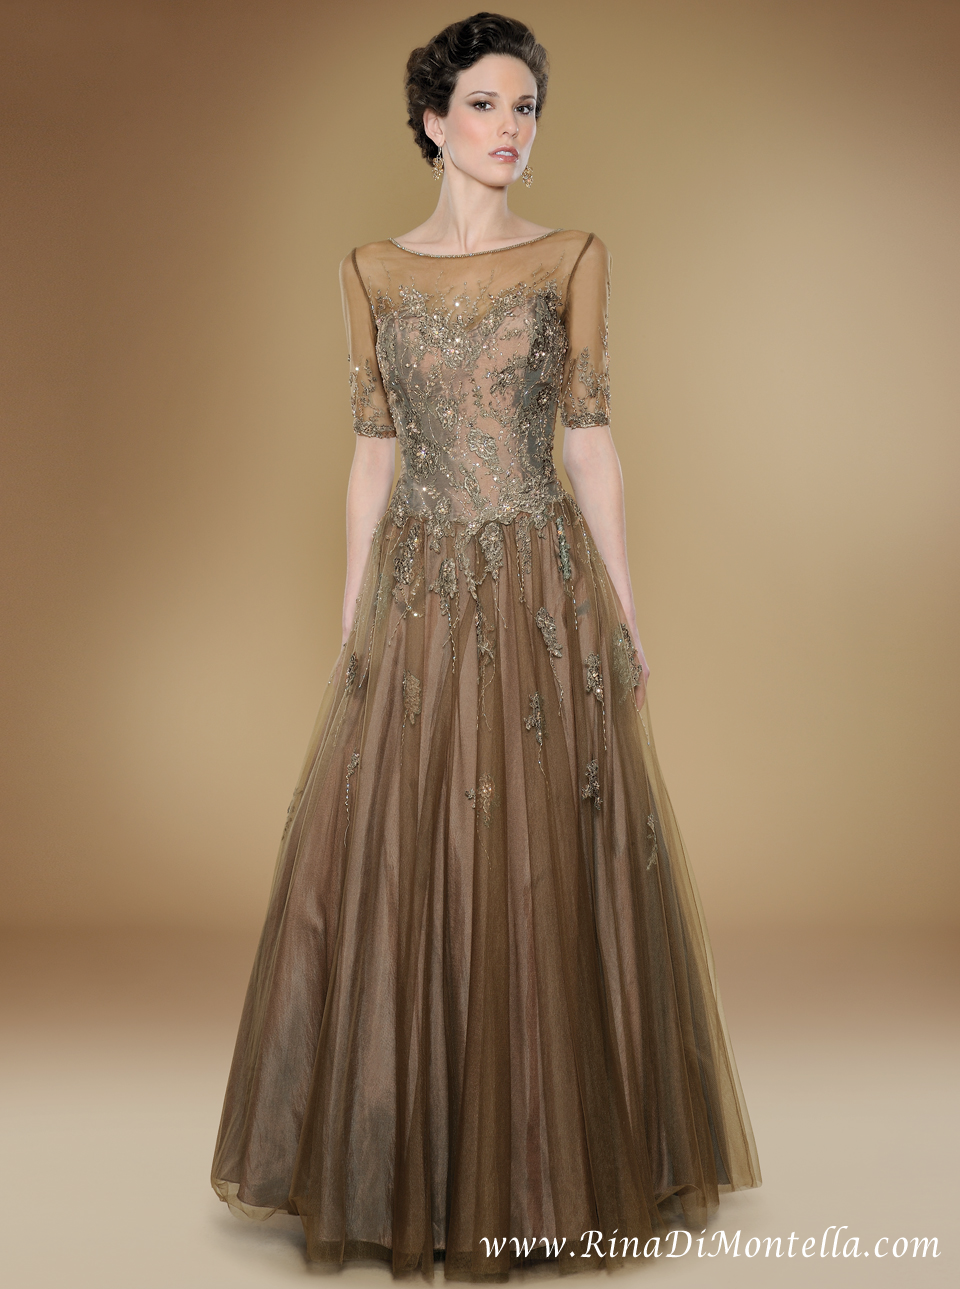 Mother of the bride gown by Rina Di Montella, style 1706 Bronze ...